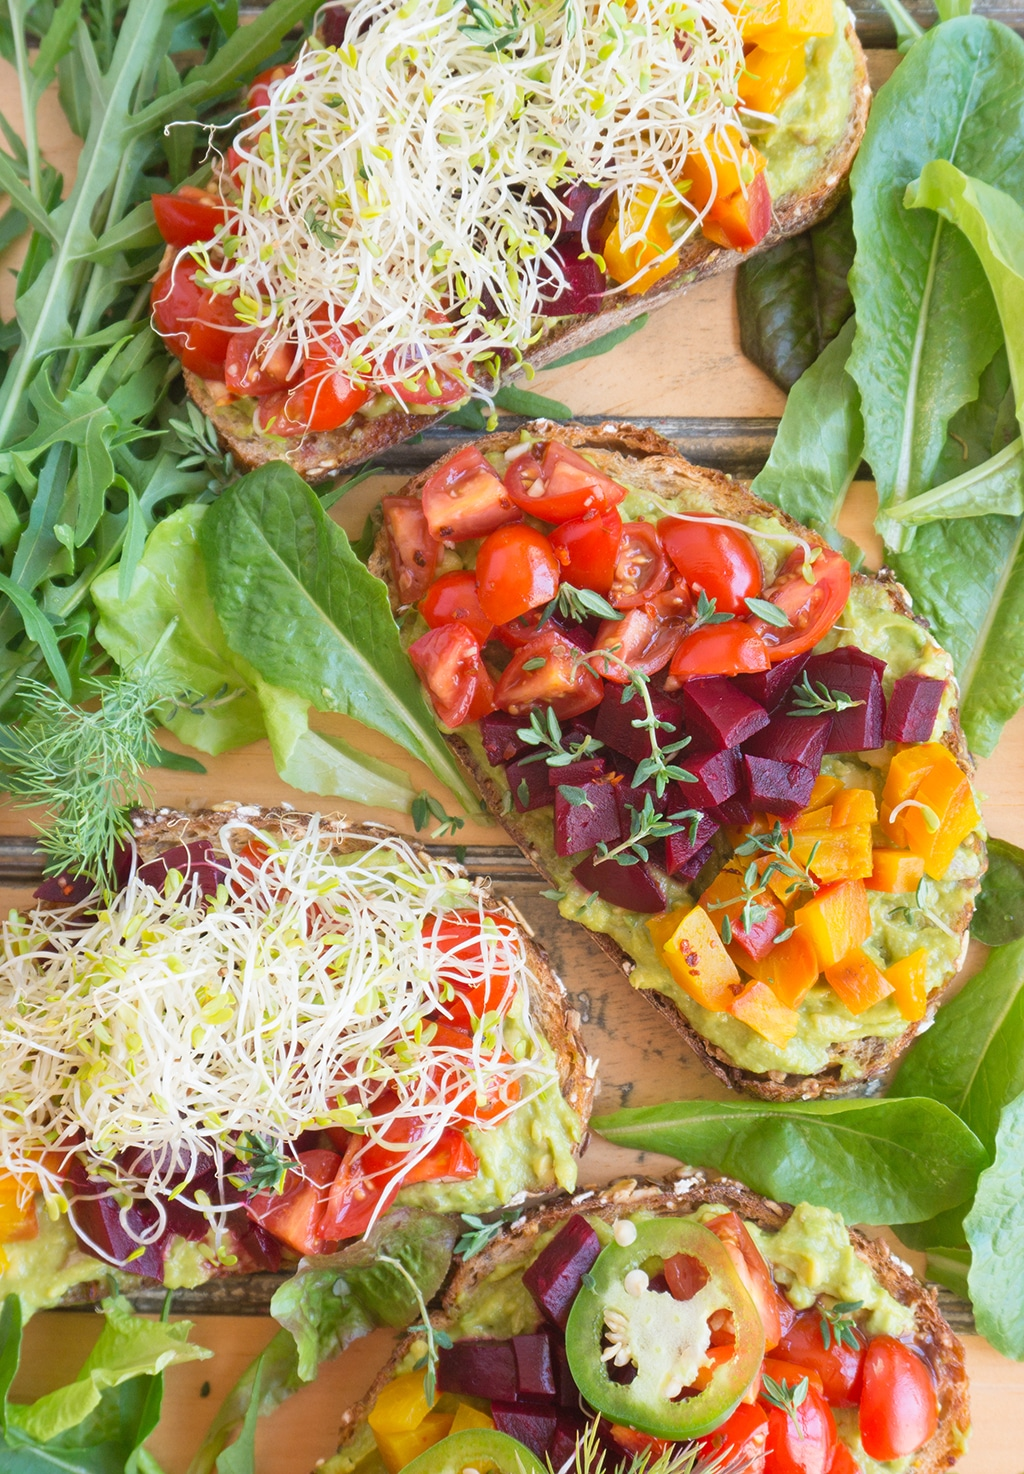 Beet & Avocado Open Faced Sandwiches: Inspiration for these Beet & Avocado Open Faced Sandwiches came from my travel in the Netherlands. Beets, Avocado, Tomatoes, Sprouts, Herbs & Seeds | VEGETARIAN | LUNCH | HEALTHY | recipe at OatandSesame.com